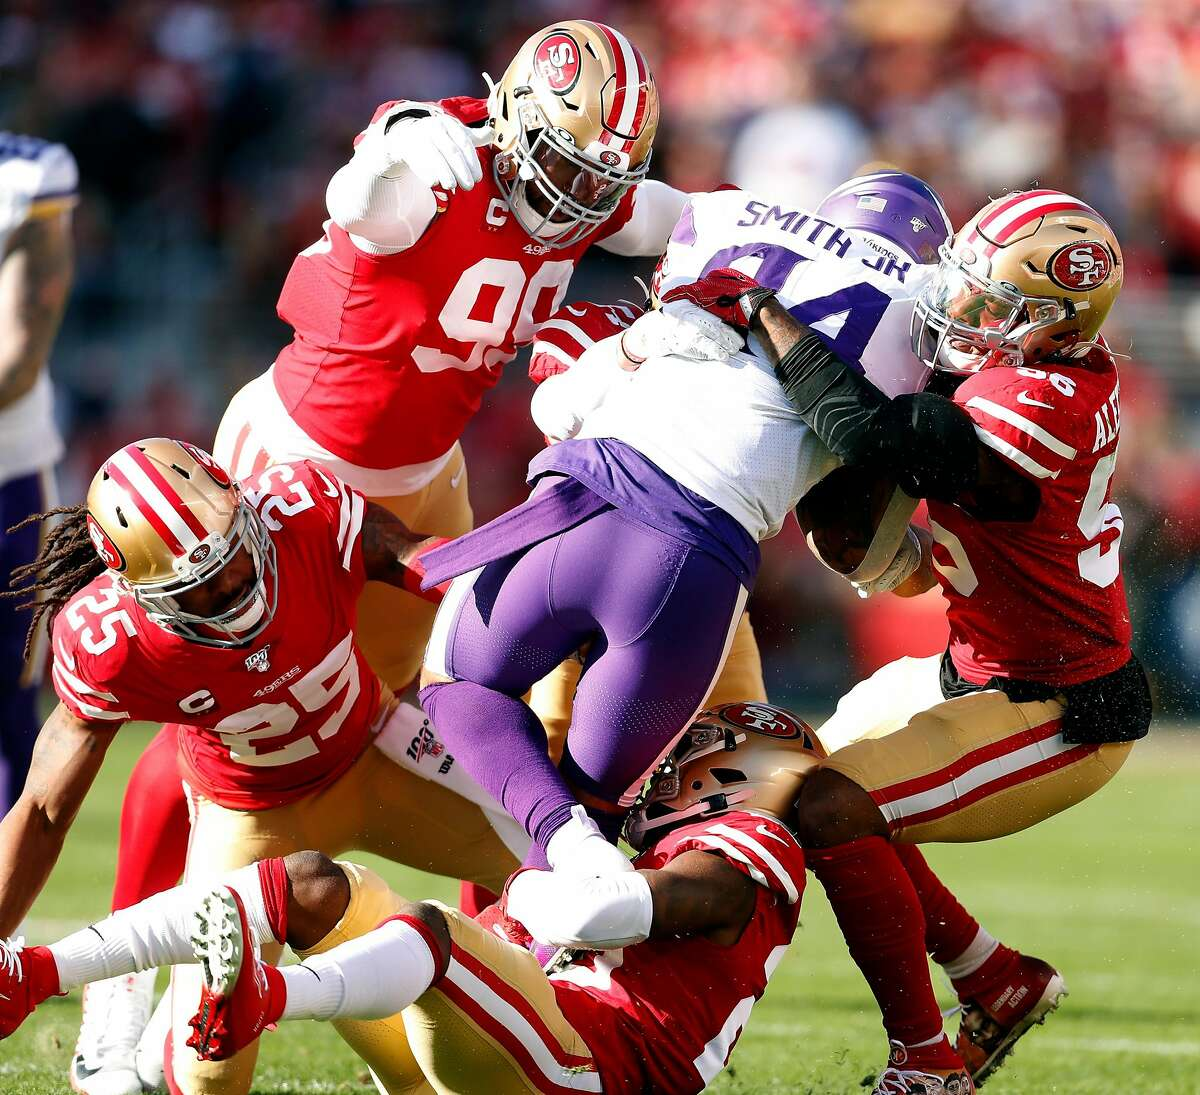 San Francisco 49ers' Kwon Alexander, DeForest Buckner, Richard Sherman and Jimmie Ward team up to stop Minnesota Vikings' Irv Smith, Jr. in 1st quarter of Niners' 27-10 win during NFC Divisional playoff game at Levi's Stadium in Santa Clara, Calif., on Saturday, January 11, 2020.